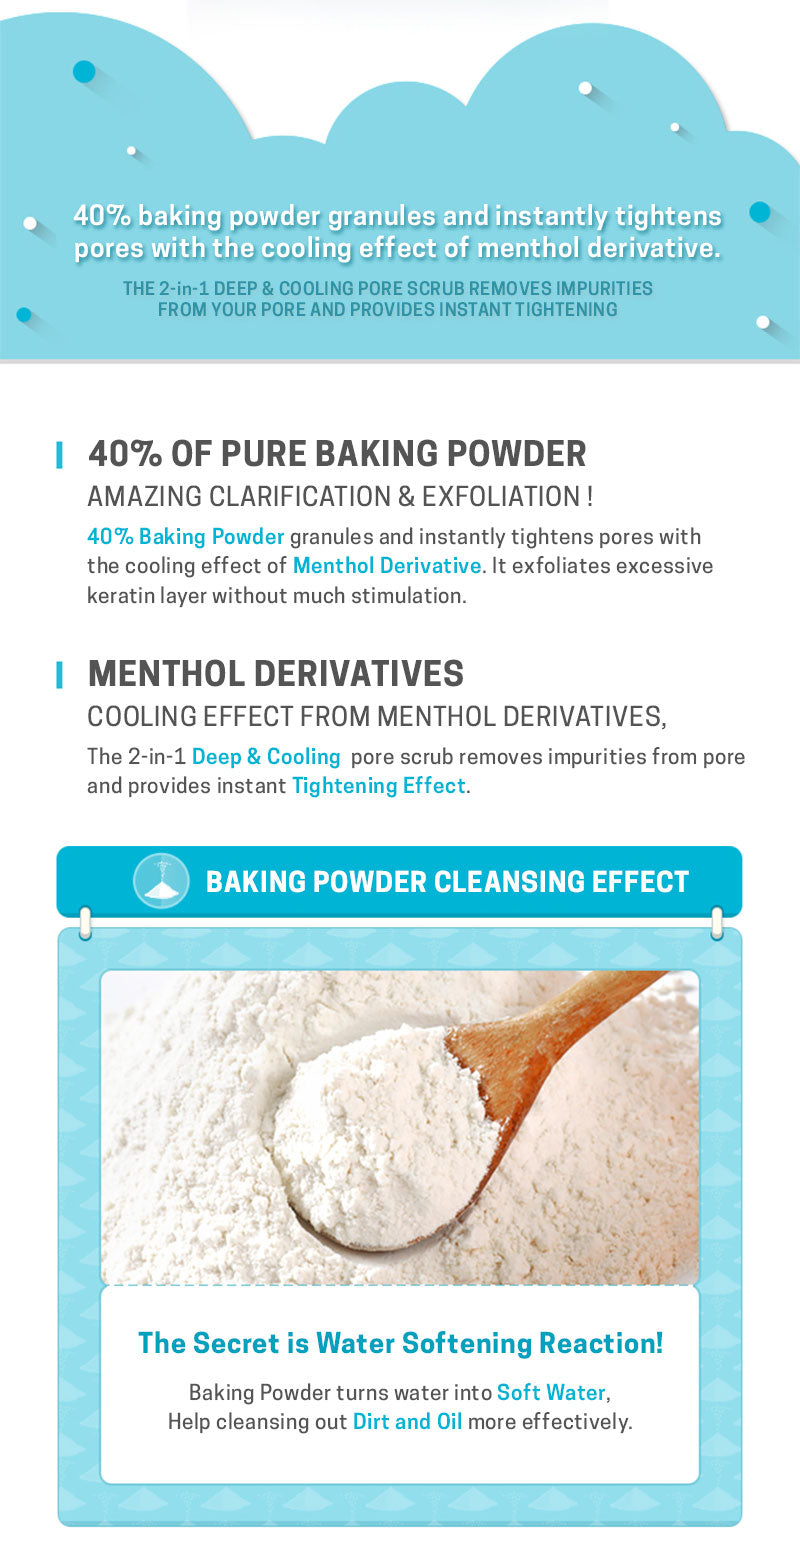 baking-powder-crunch-pore-scrub2